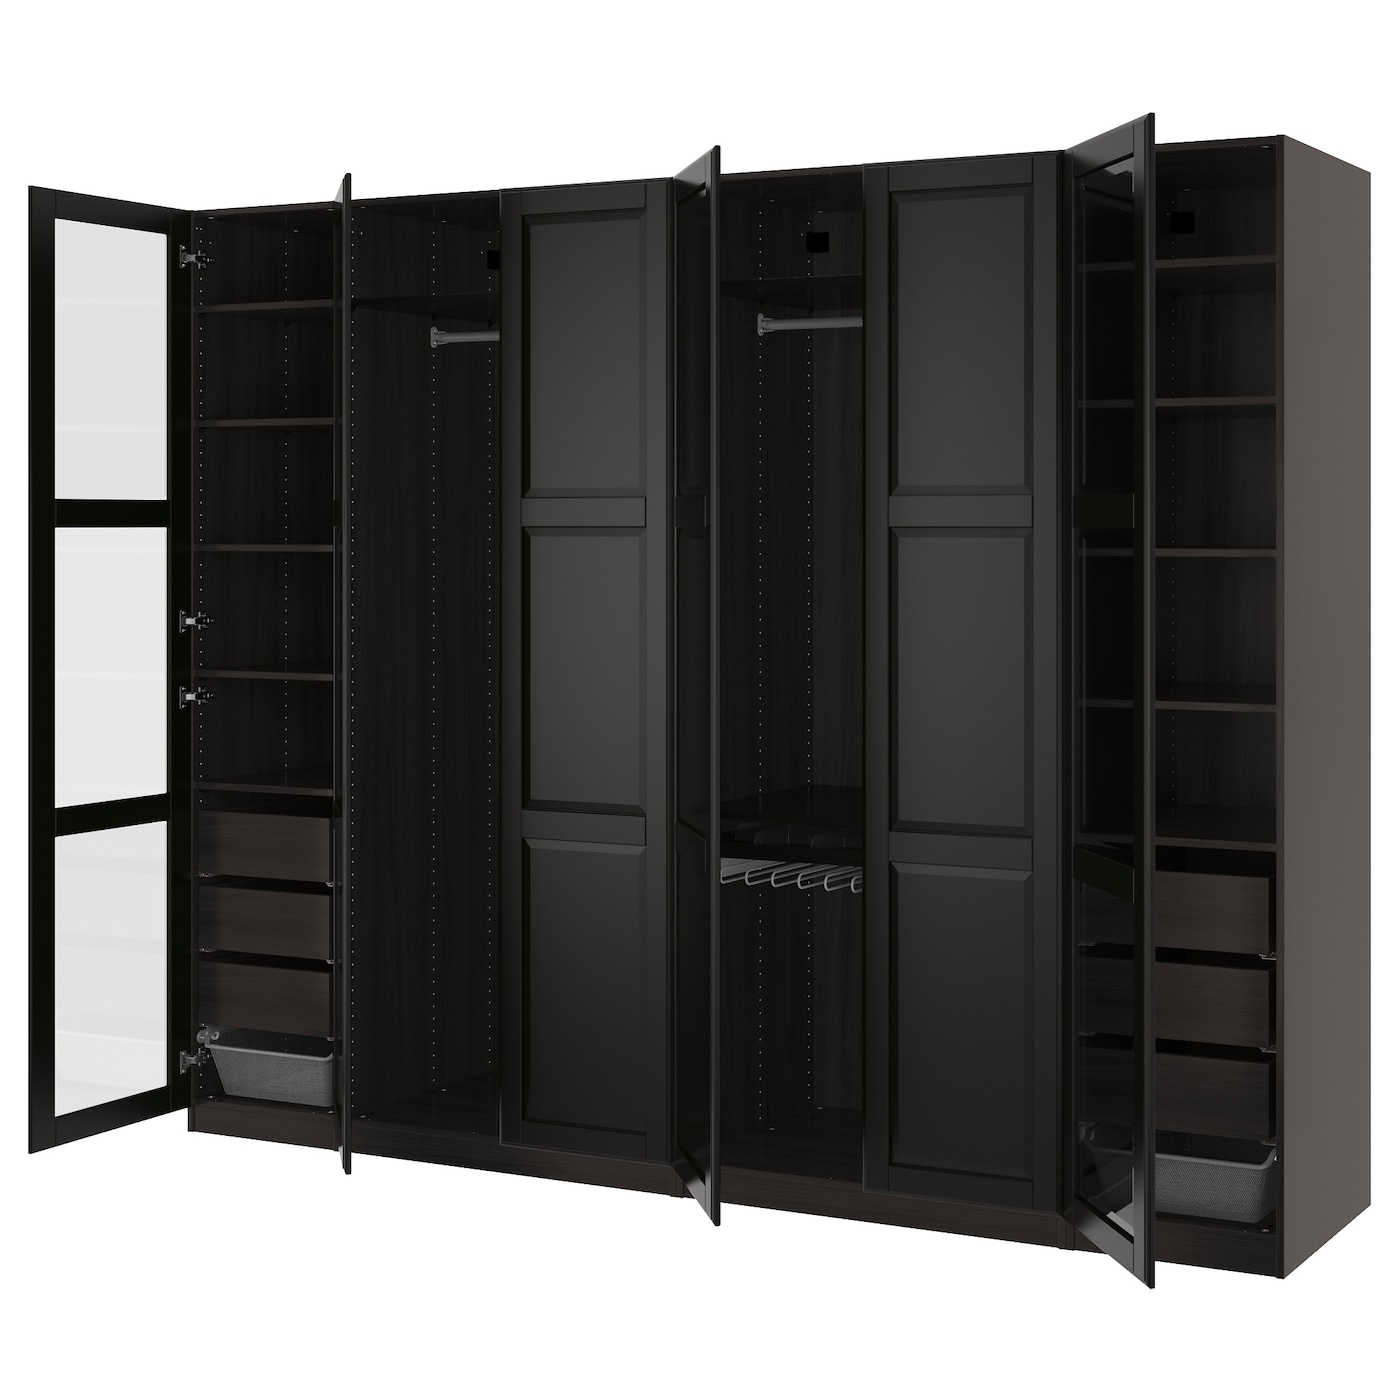 pax wardrobe black brown undredal undredal glass. Black Bedroom Furniture Sets. Home Design Ideas